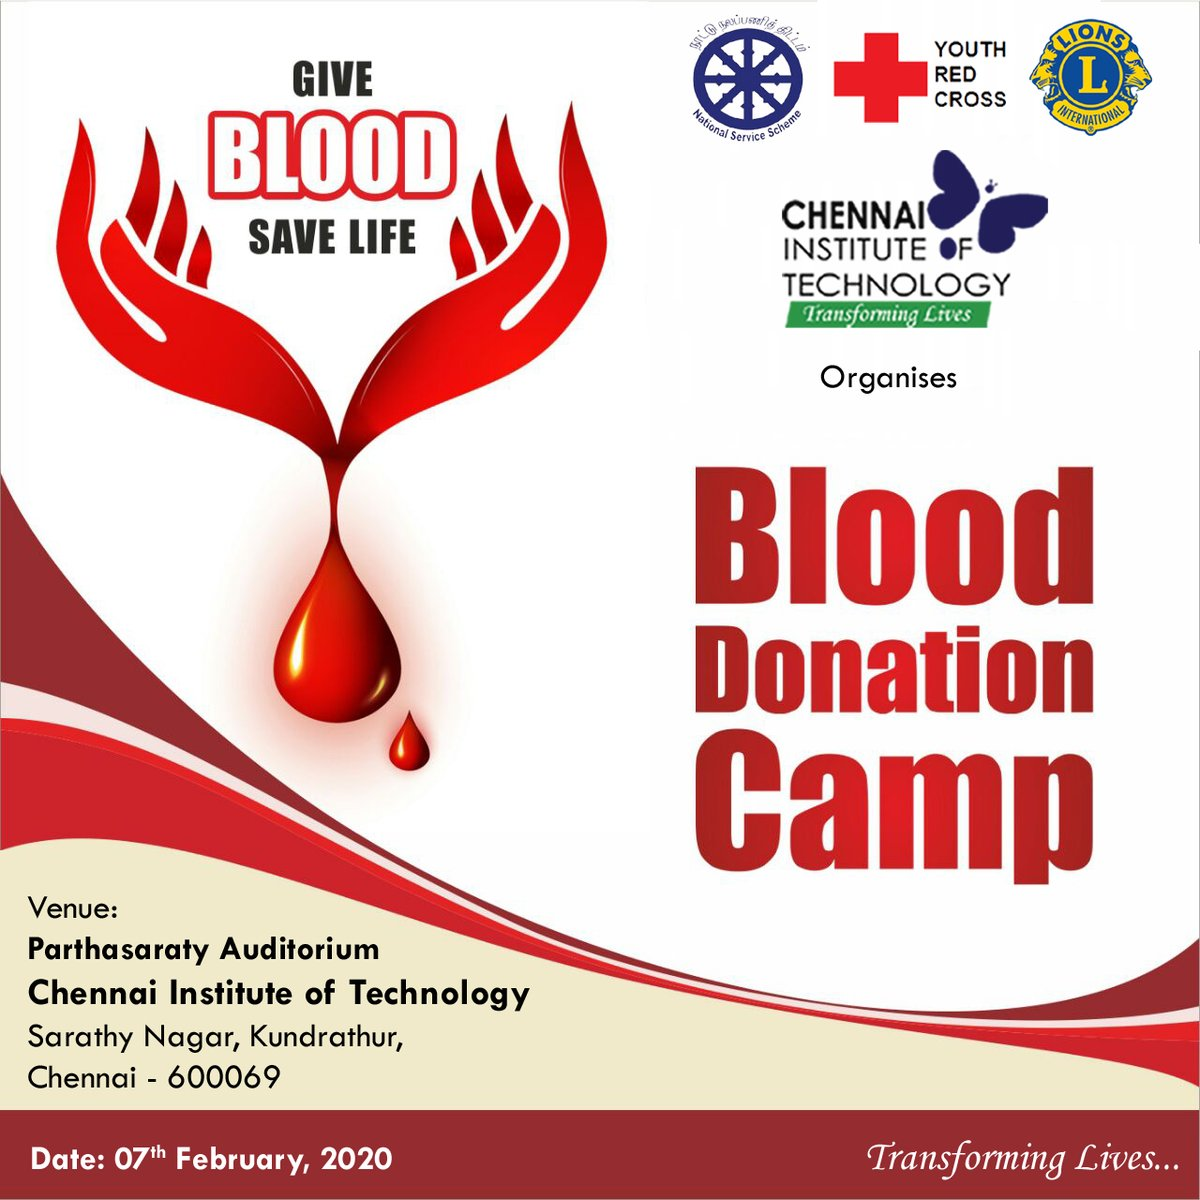 Blood Donation Camp @ #ChennaiInstituteofTechnology - organised by NSS, YRC & Lions Club of CIT in association with Lions Blood Bank Egmore on 7th February 2020 #DonateBlood #SaveLife #LionsClubpic.twitter.com/rzwRMvnLV0